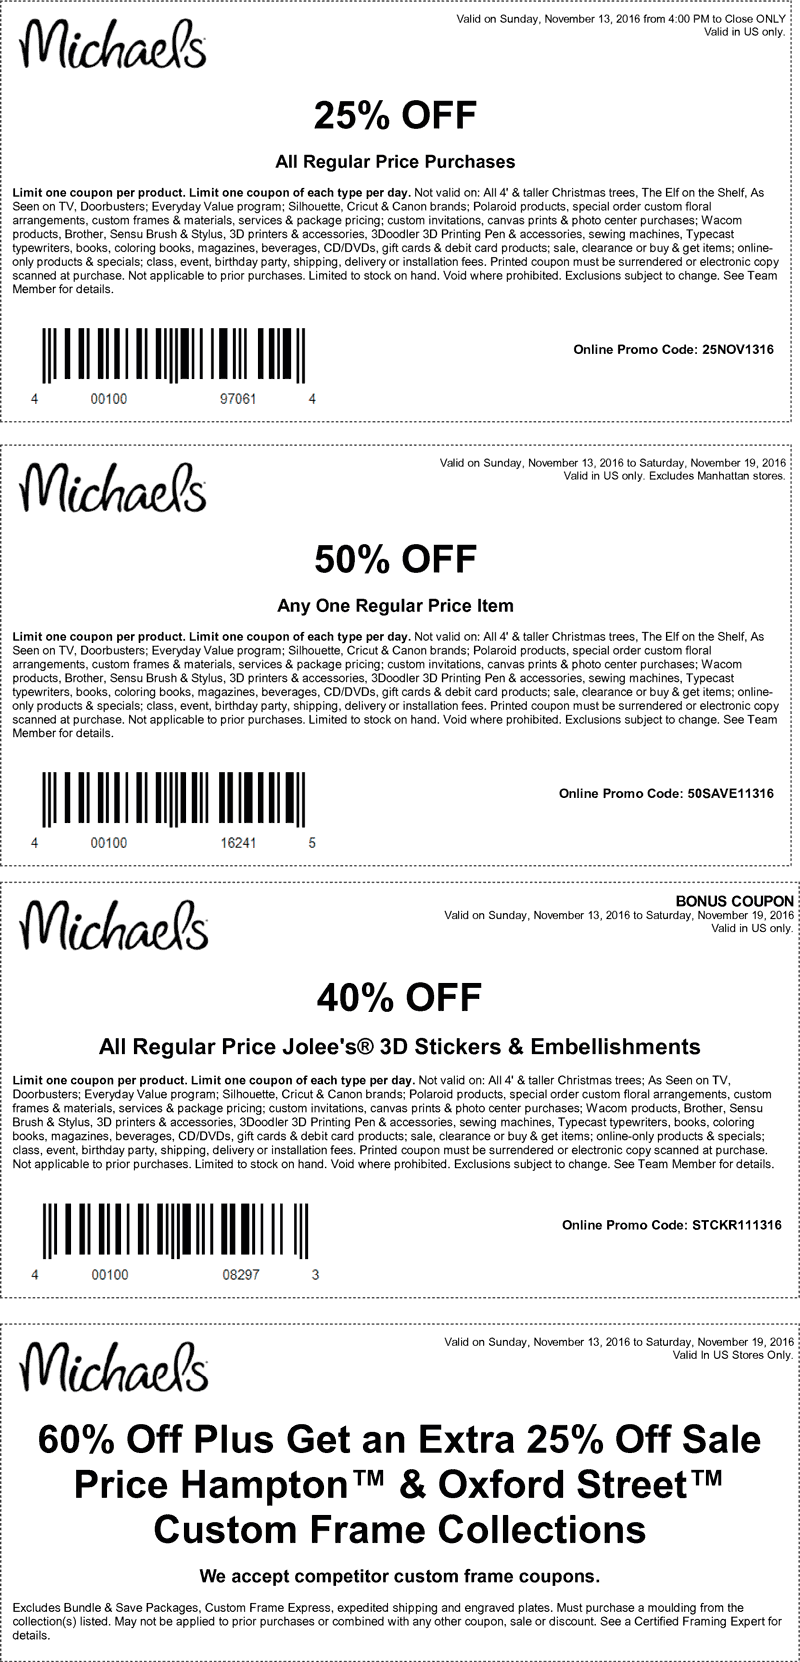 Michaels Coupon March 2019 50% off a single item & more at Michaels, or online via promo code 50SAVE11316